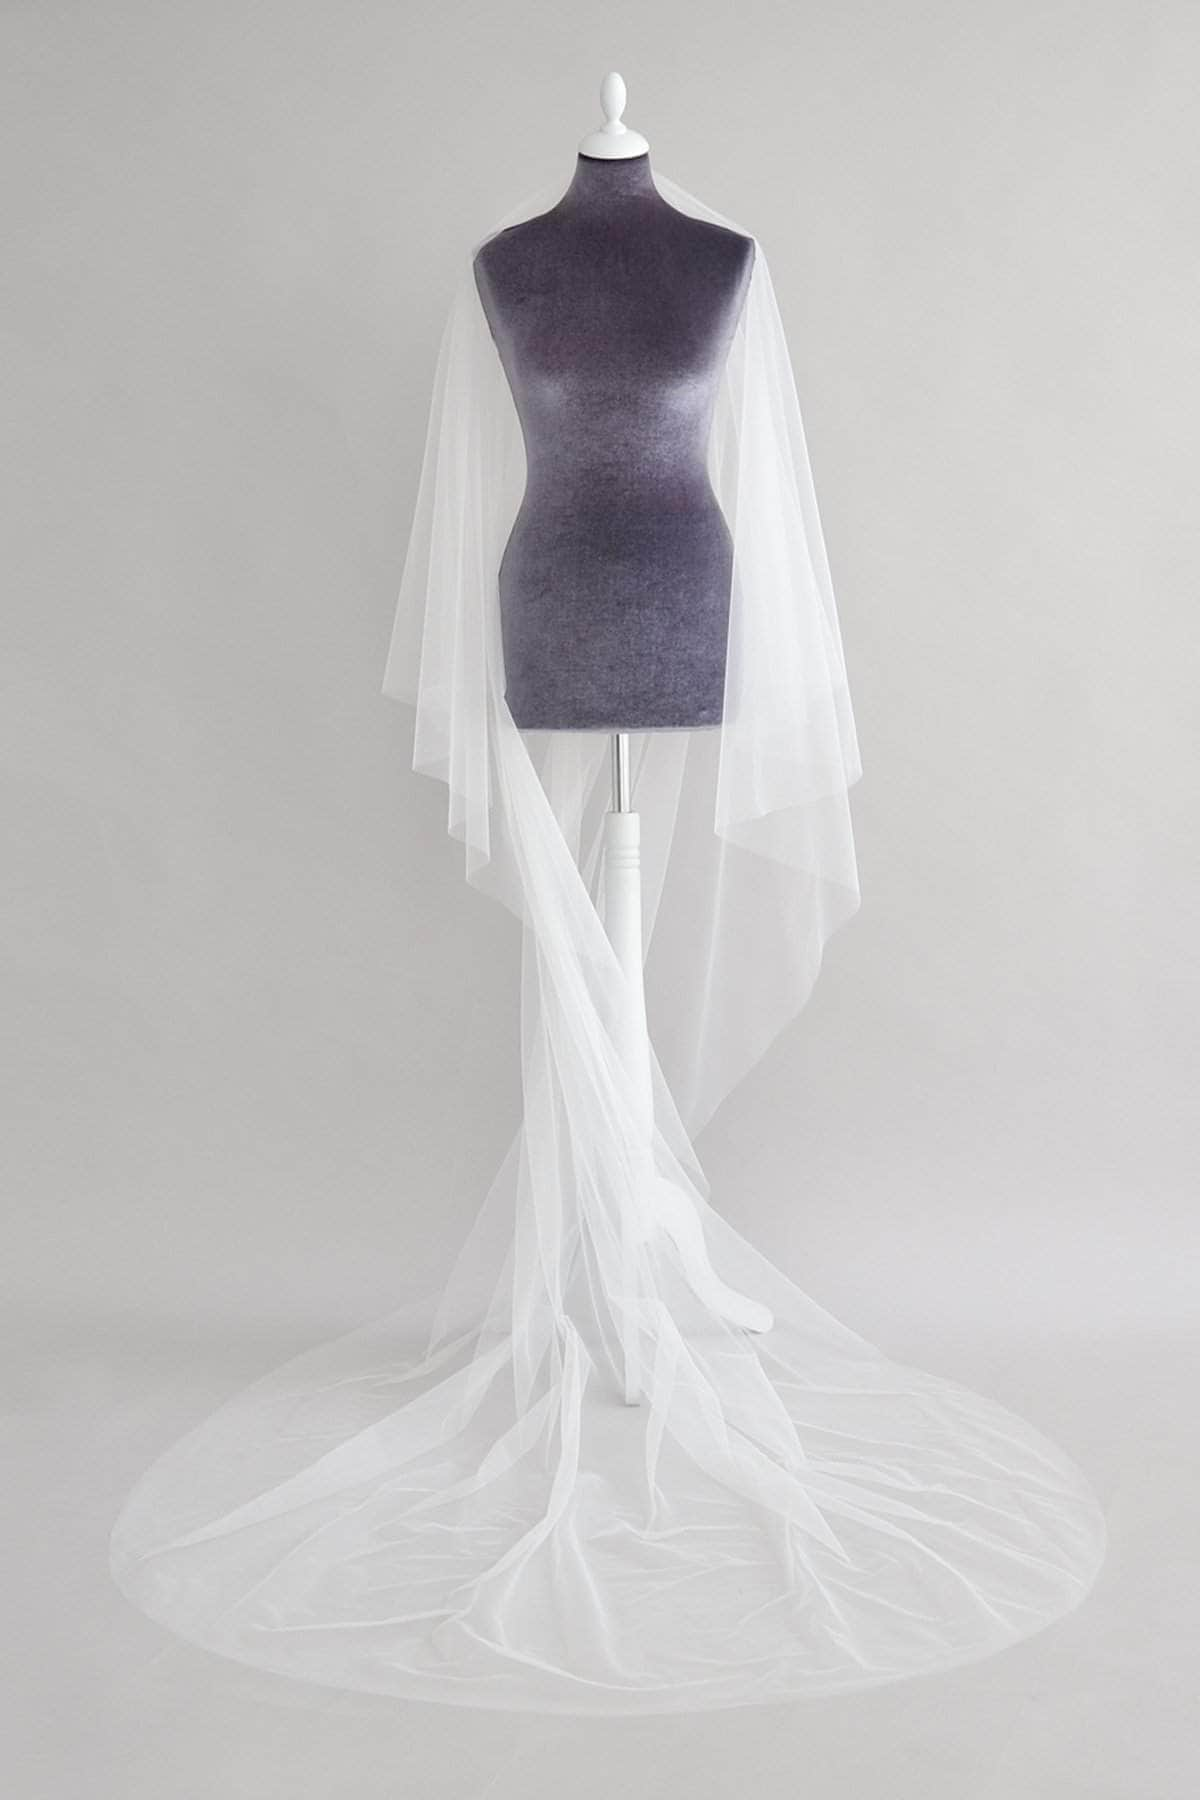 Wedding Veil Italian tulle drop wedding veil - 'Delphine'